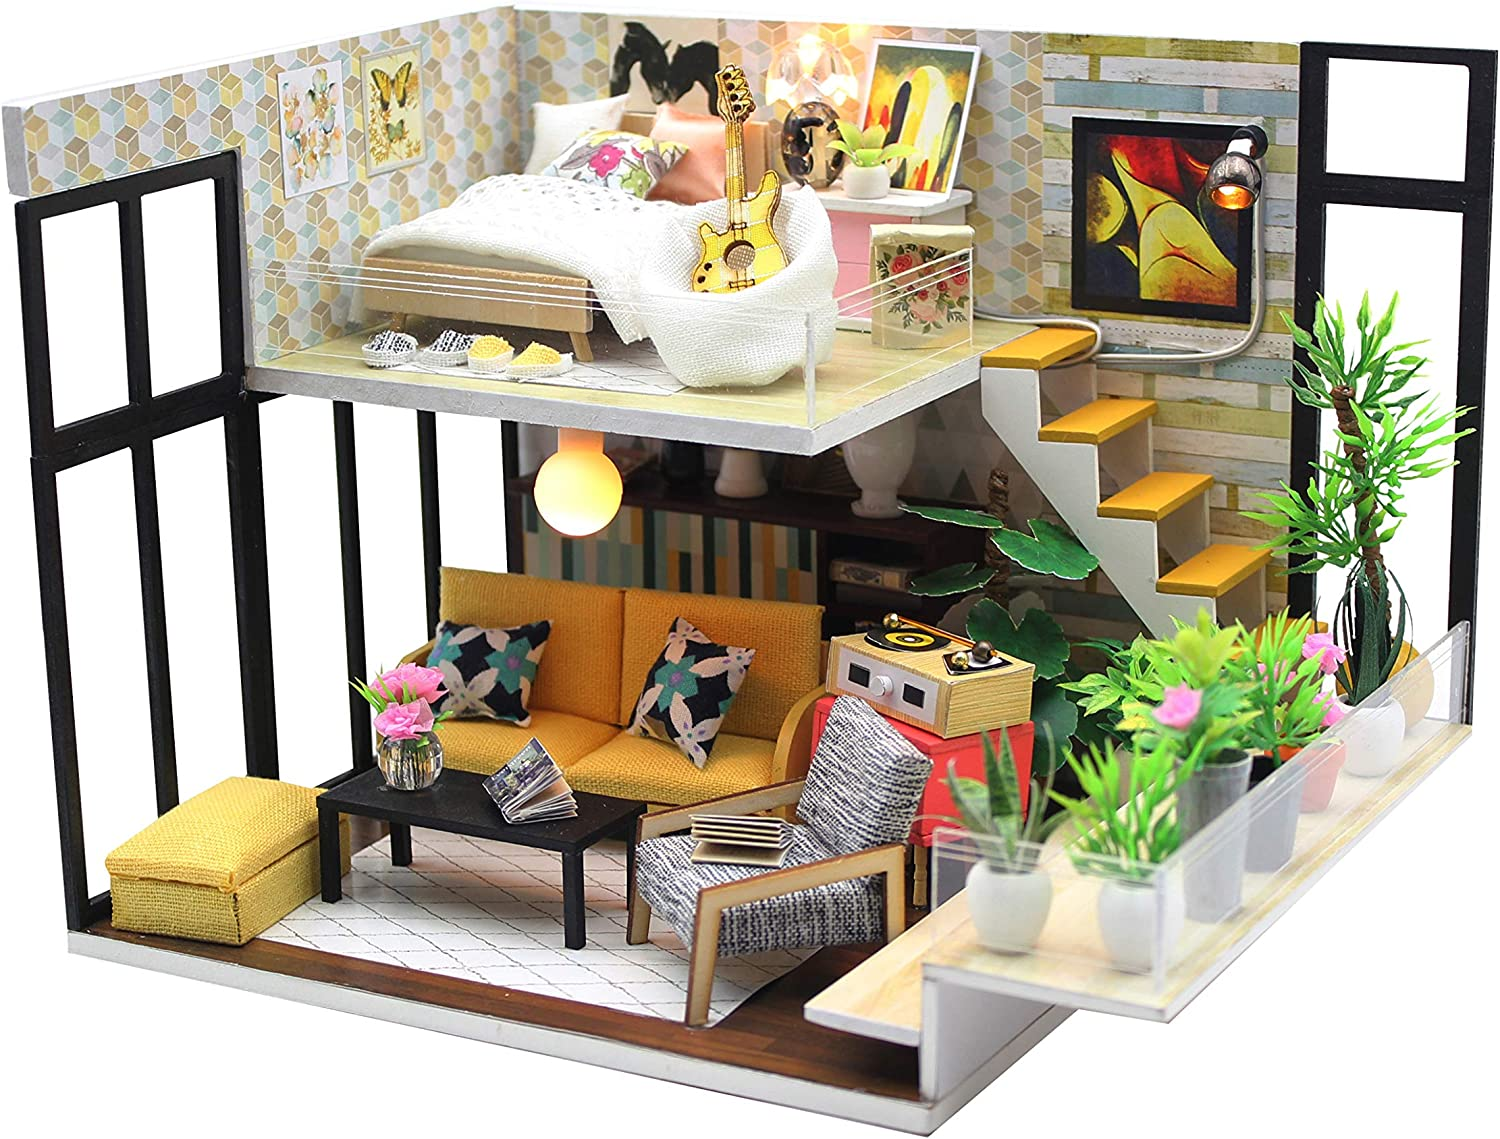 Monarca. Oriana's Holiday. DIY Miniature Dollhouse Kit – Mini House Making Kit with Miniature Dollhouse Accessories – Tiny House Building Kit – Ideal Doll House for Kids and Grown Ups